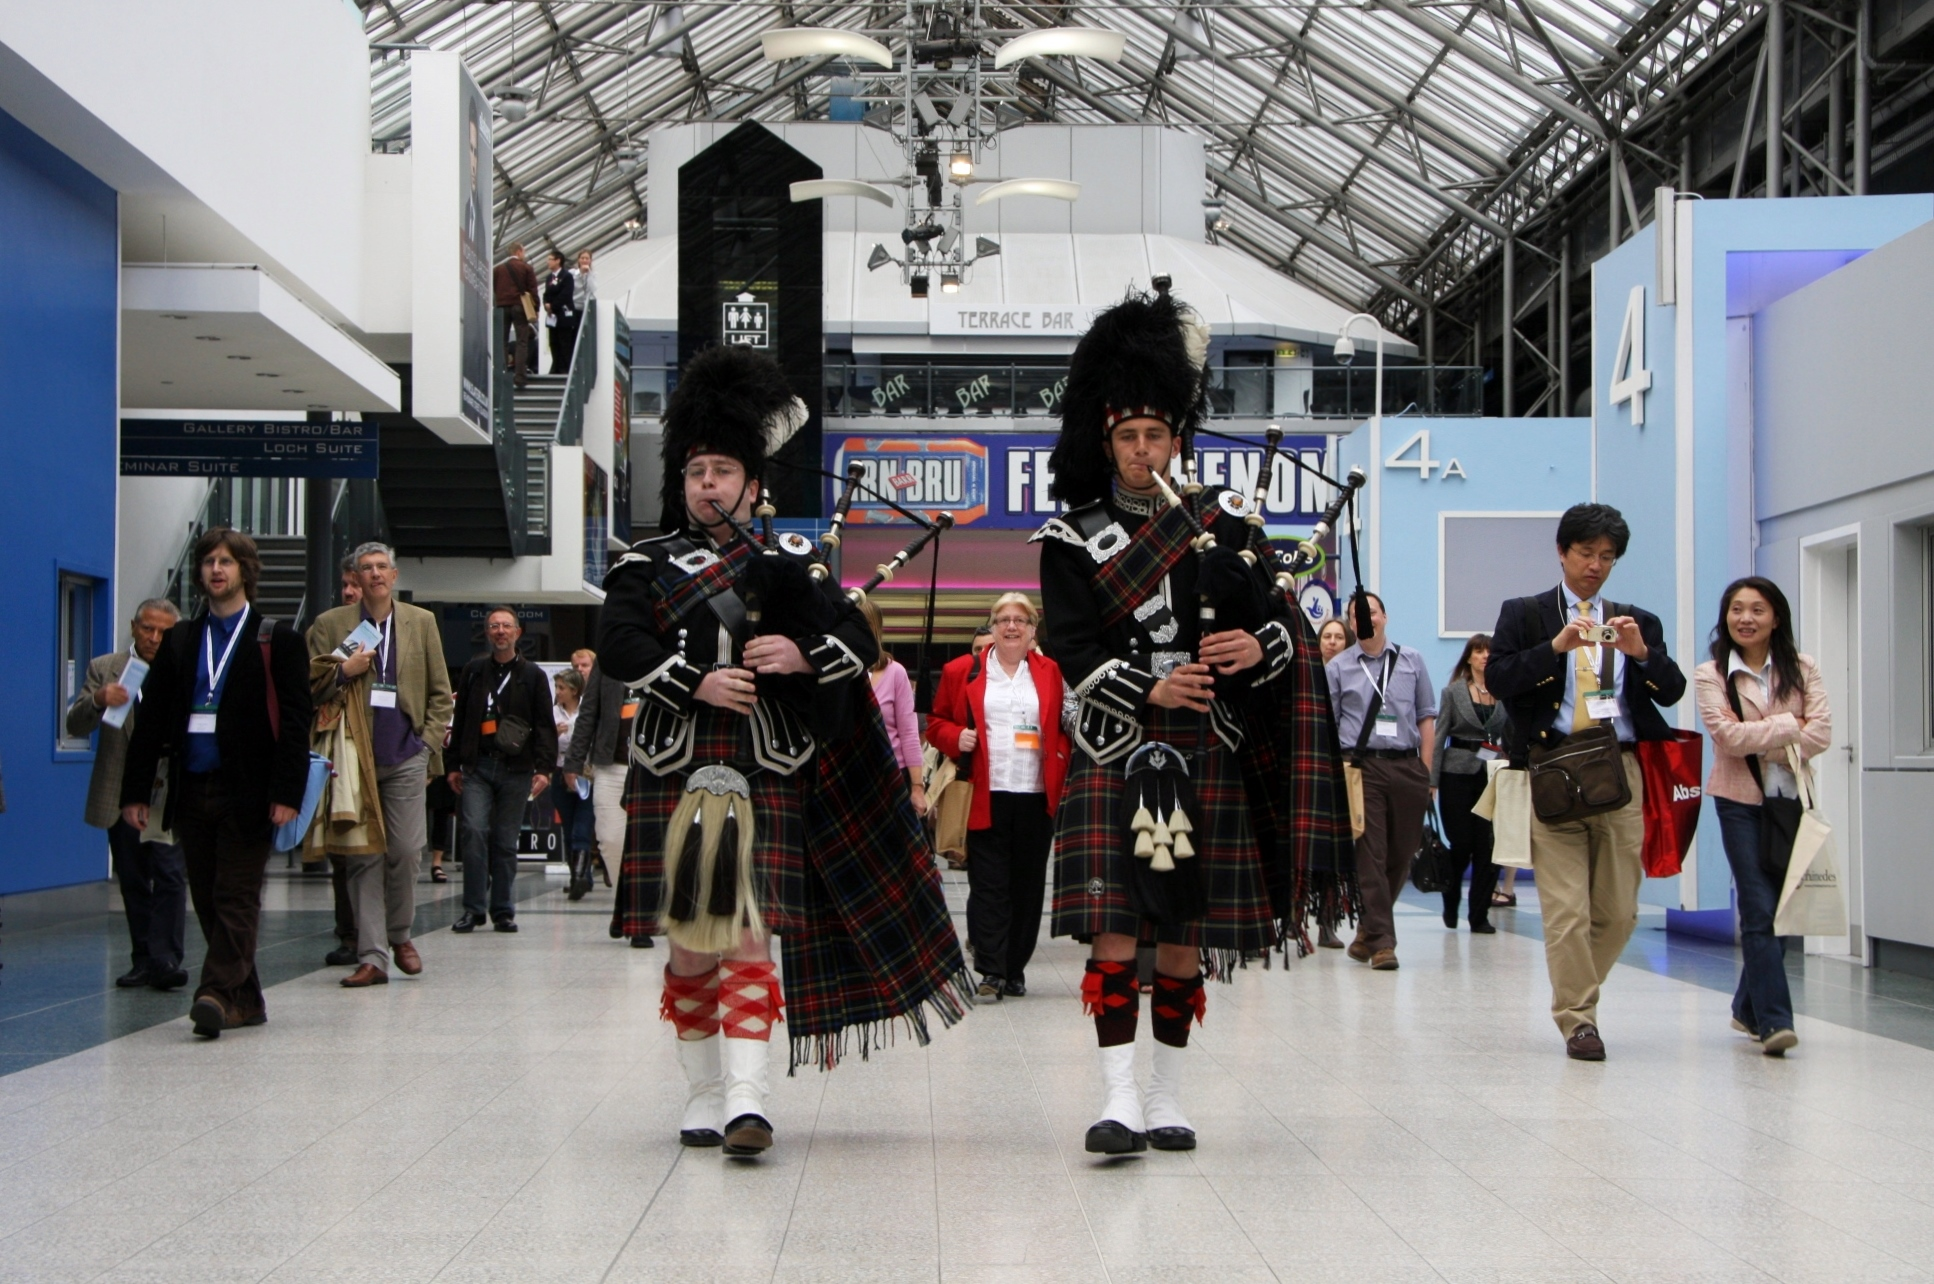 SEC_Glasgow_Pipers_Welcome